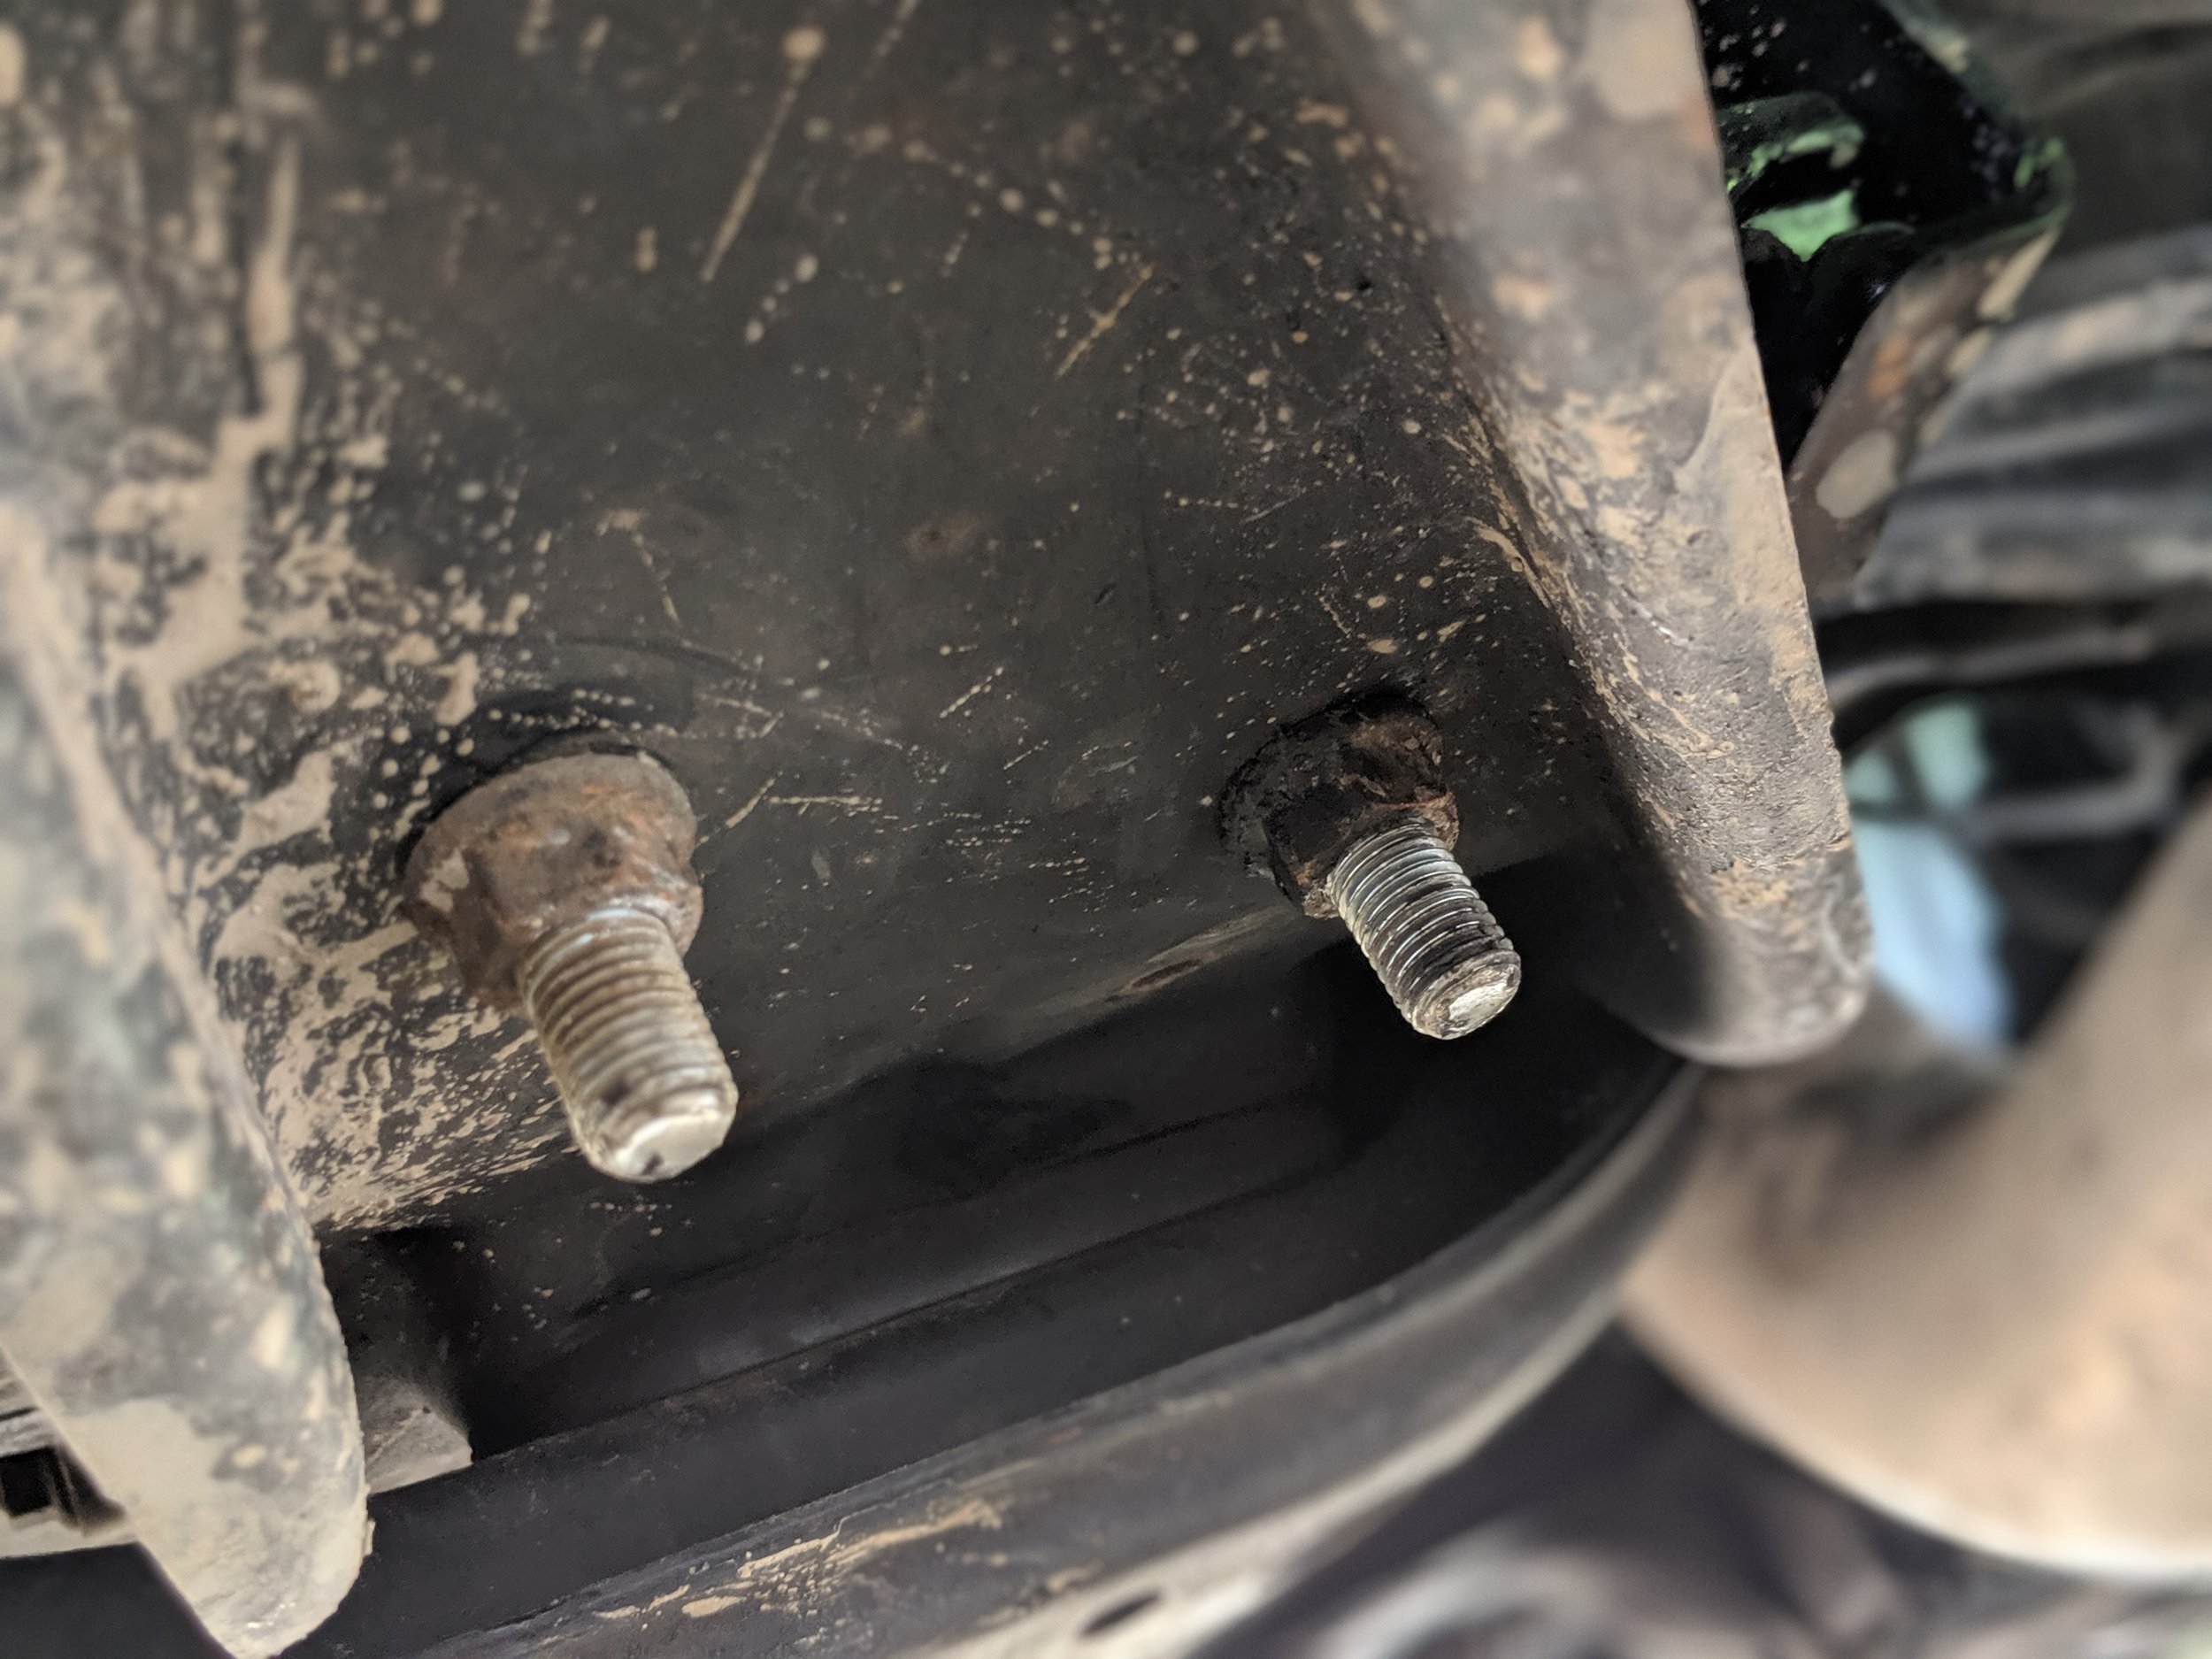 These two nuts hold the transmission mount to the bracing. With them removed the brace will slide on down.